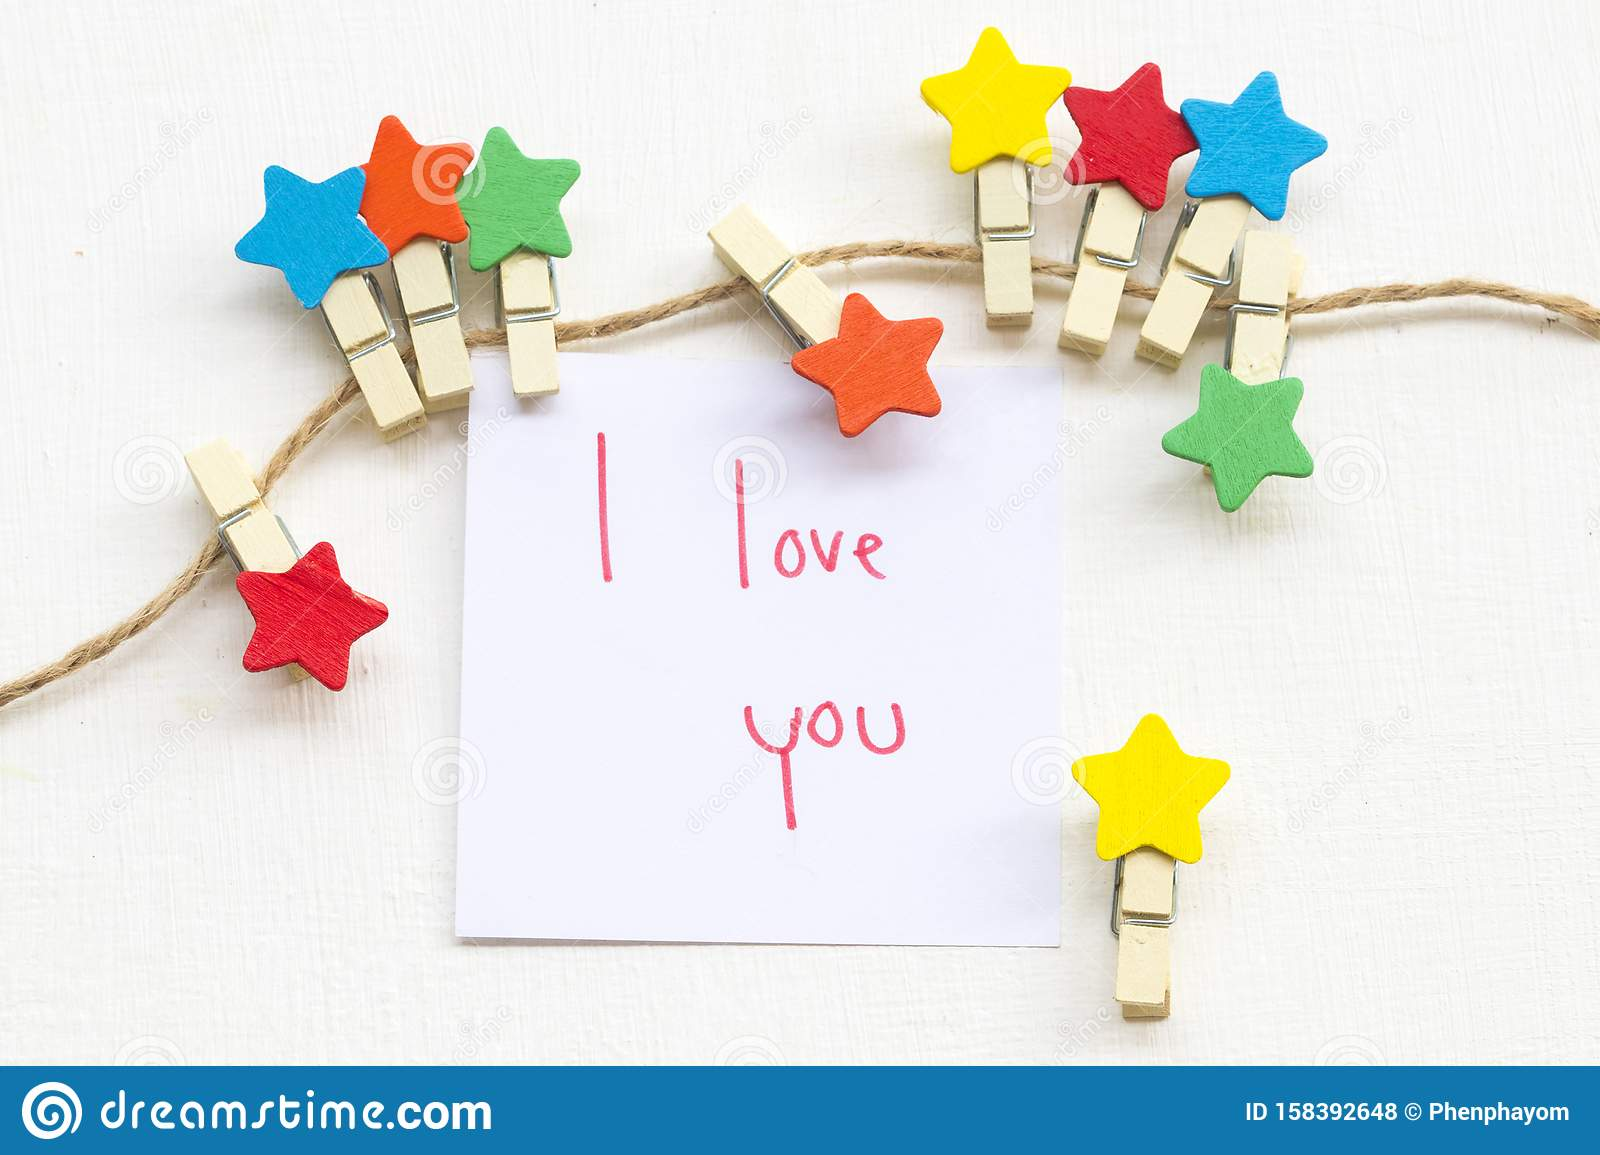 I Love You Message Card Handwriting With Colorful Wooden